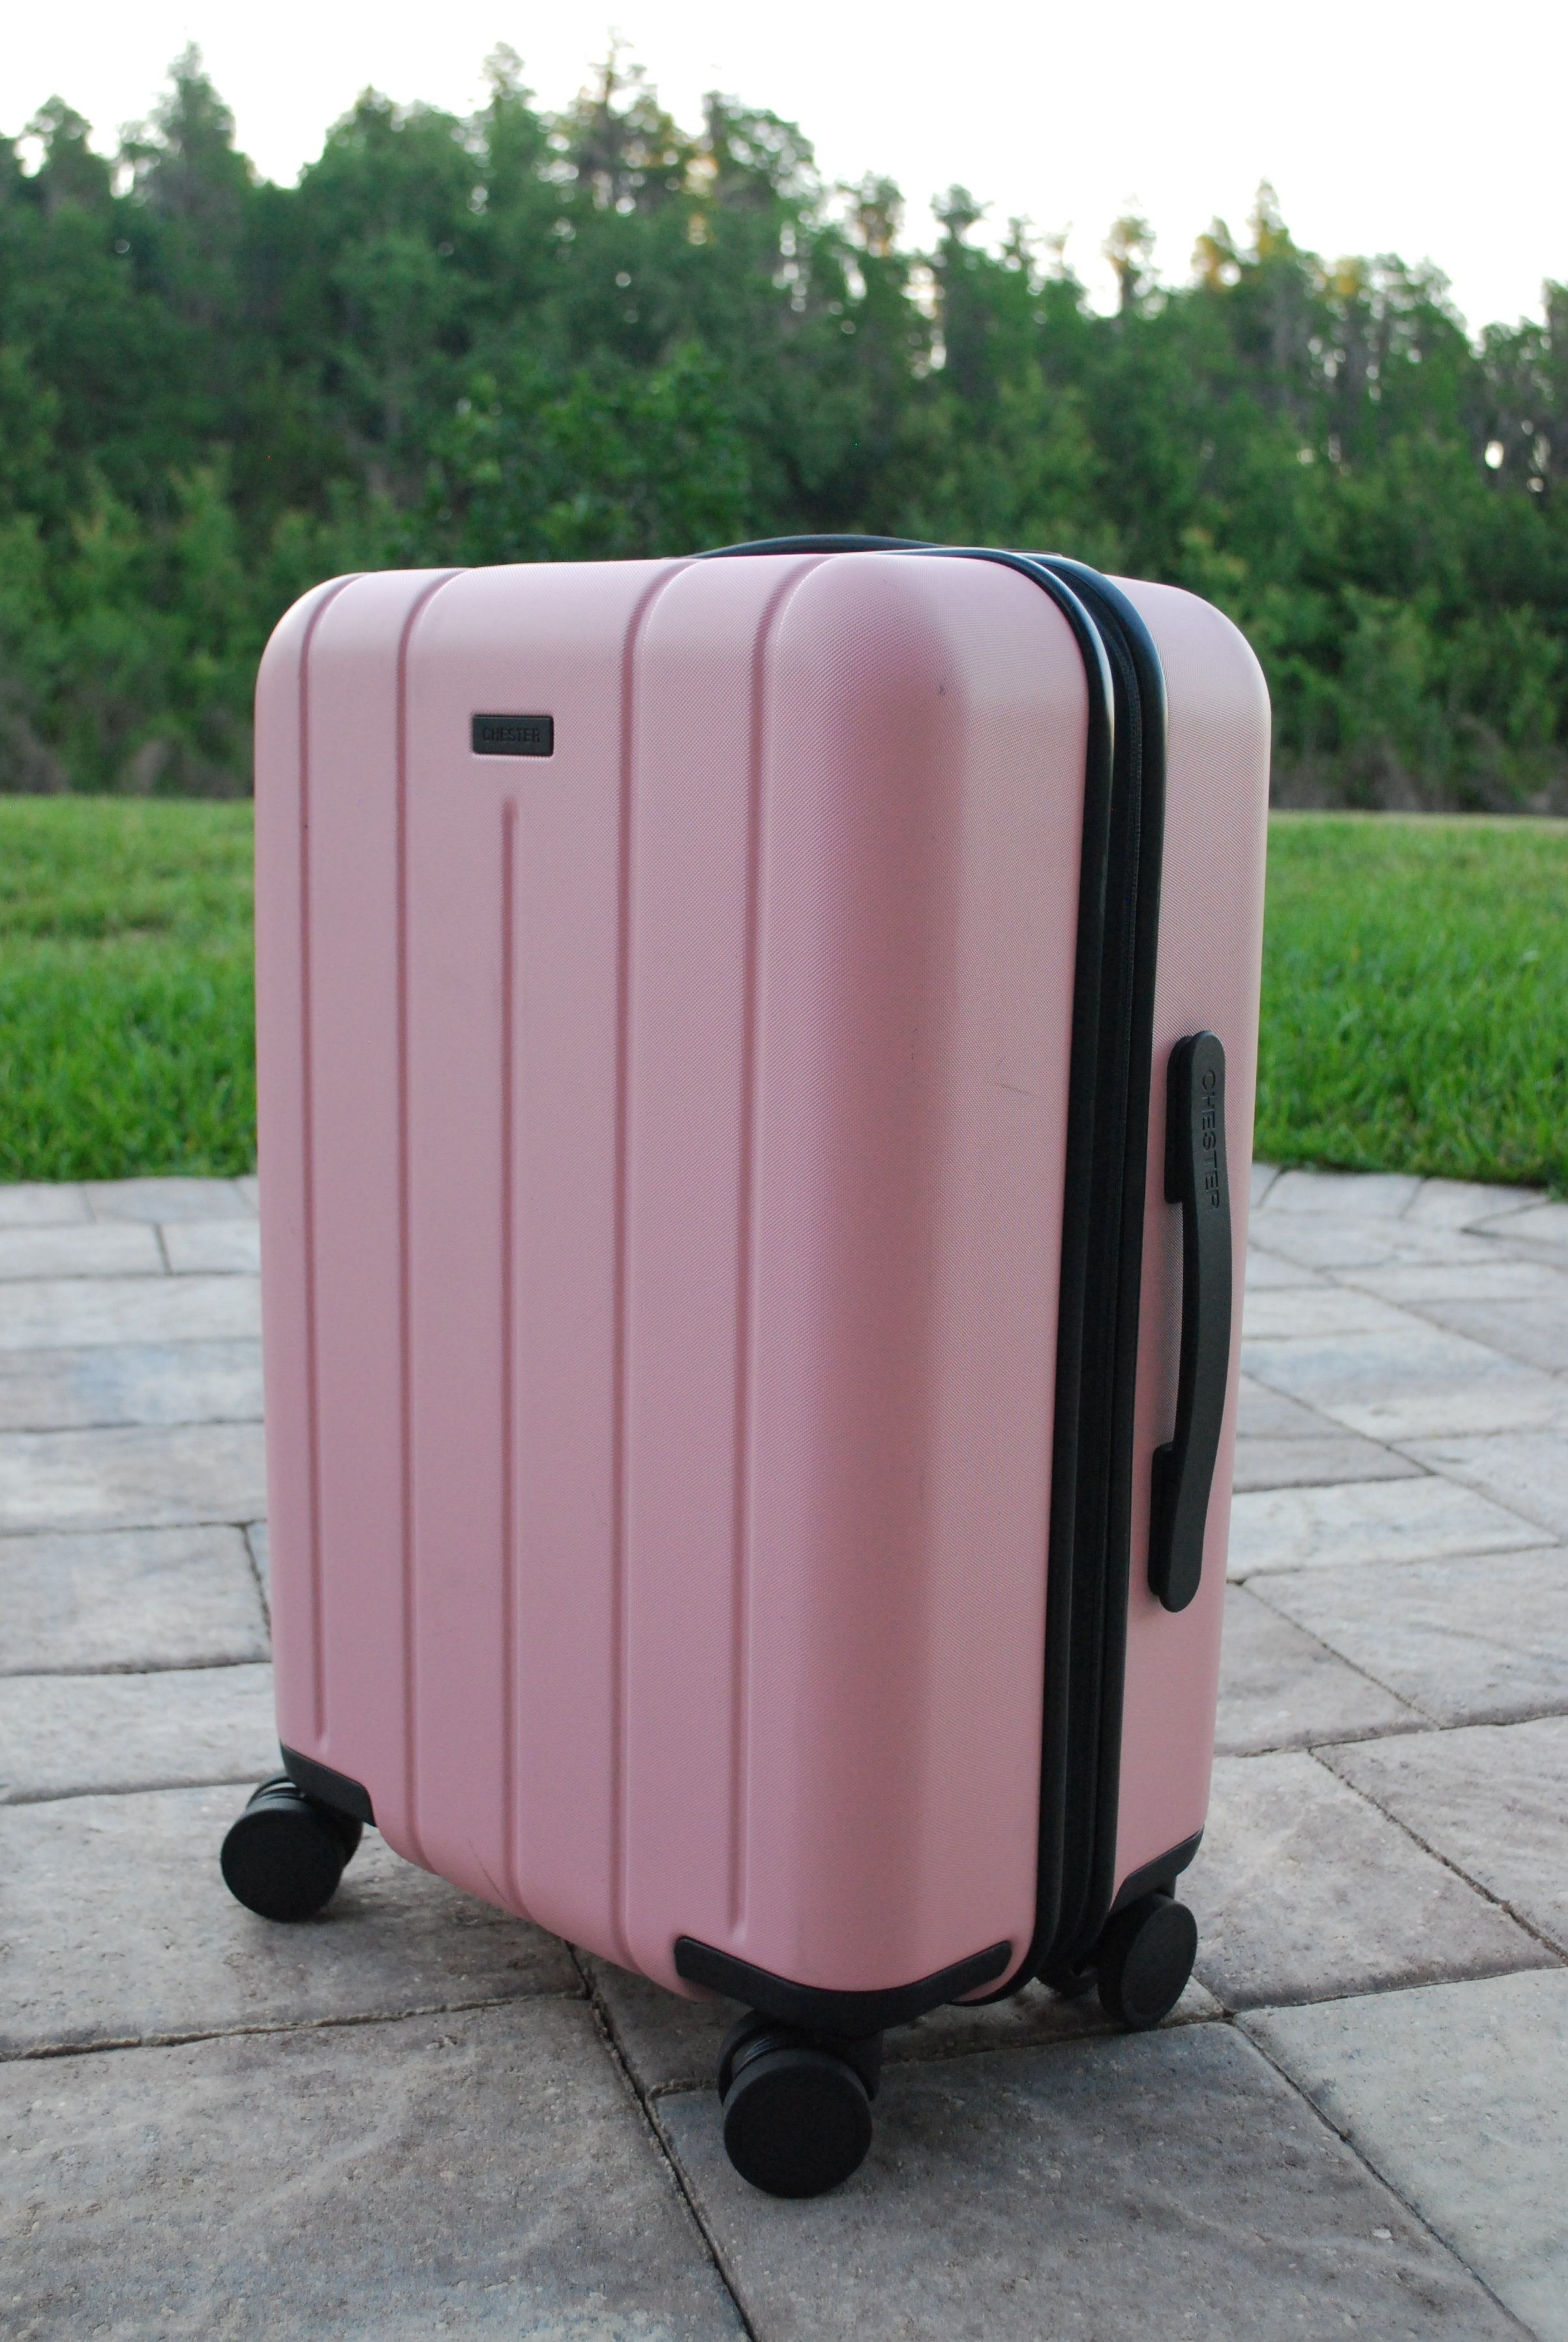 Repin and click to discover the IT luggage brand every traveller needs to know. The best suitcases for travellers. How to pick the best suitcase. #thebeautybackpacker #packingtips #bestsuitcase #traveltips